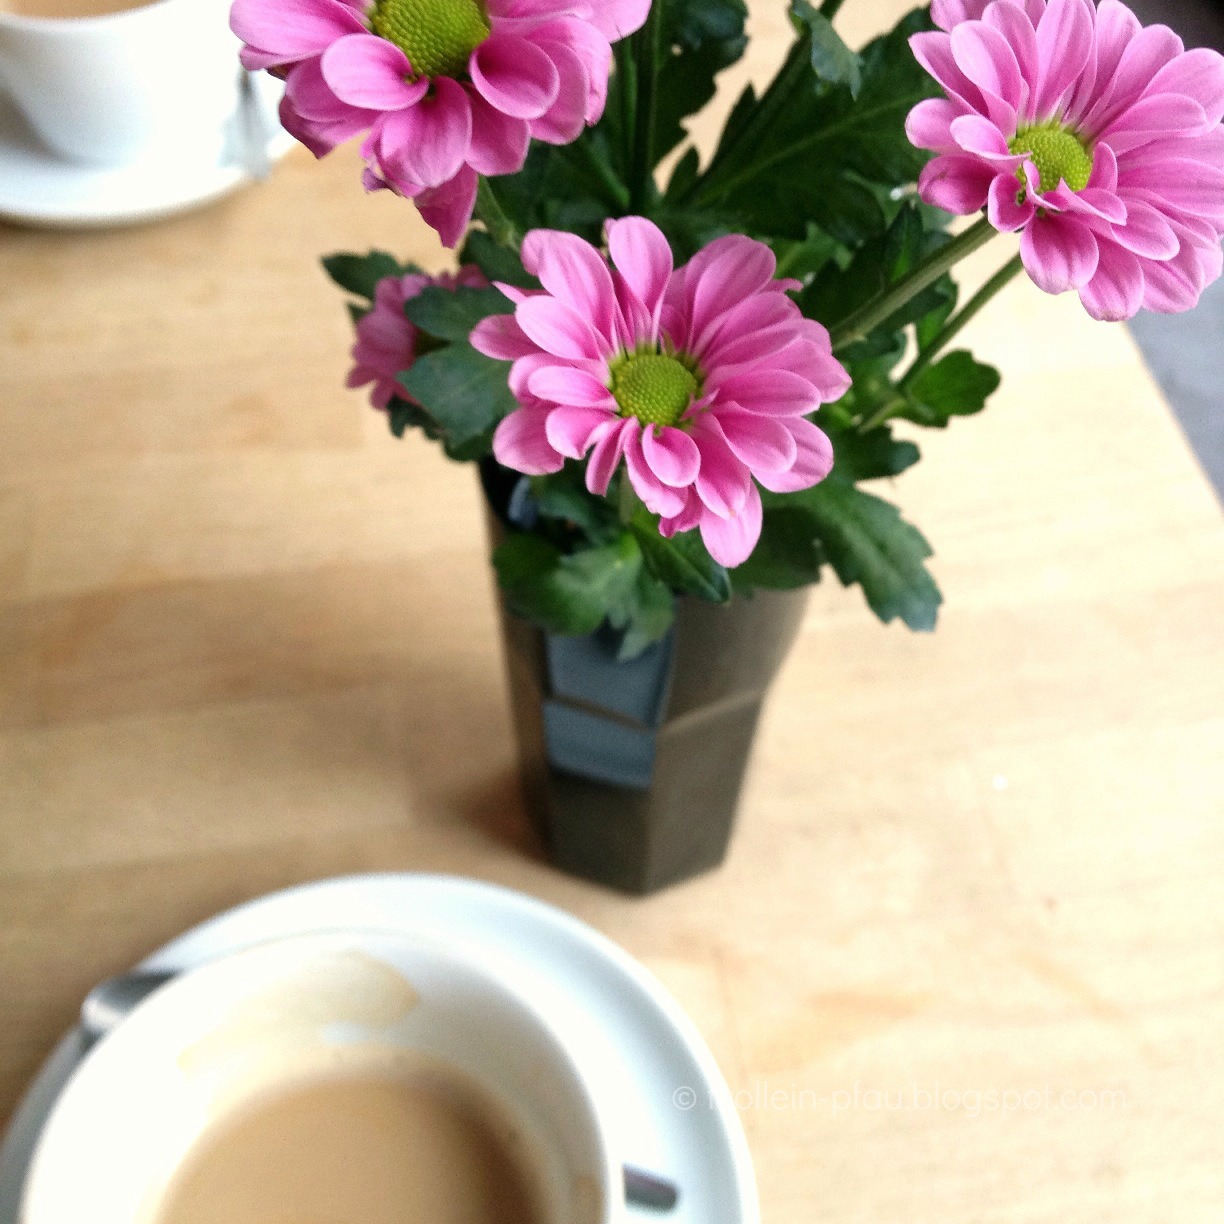 BIWYFI, Beauty is where you find it, Frühling, Blumen, Kaffee, Café